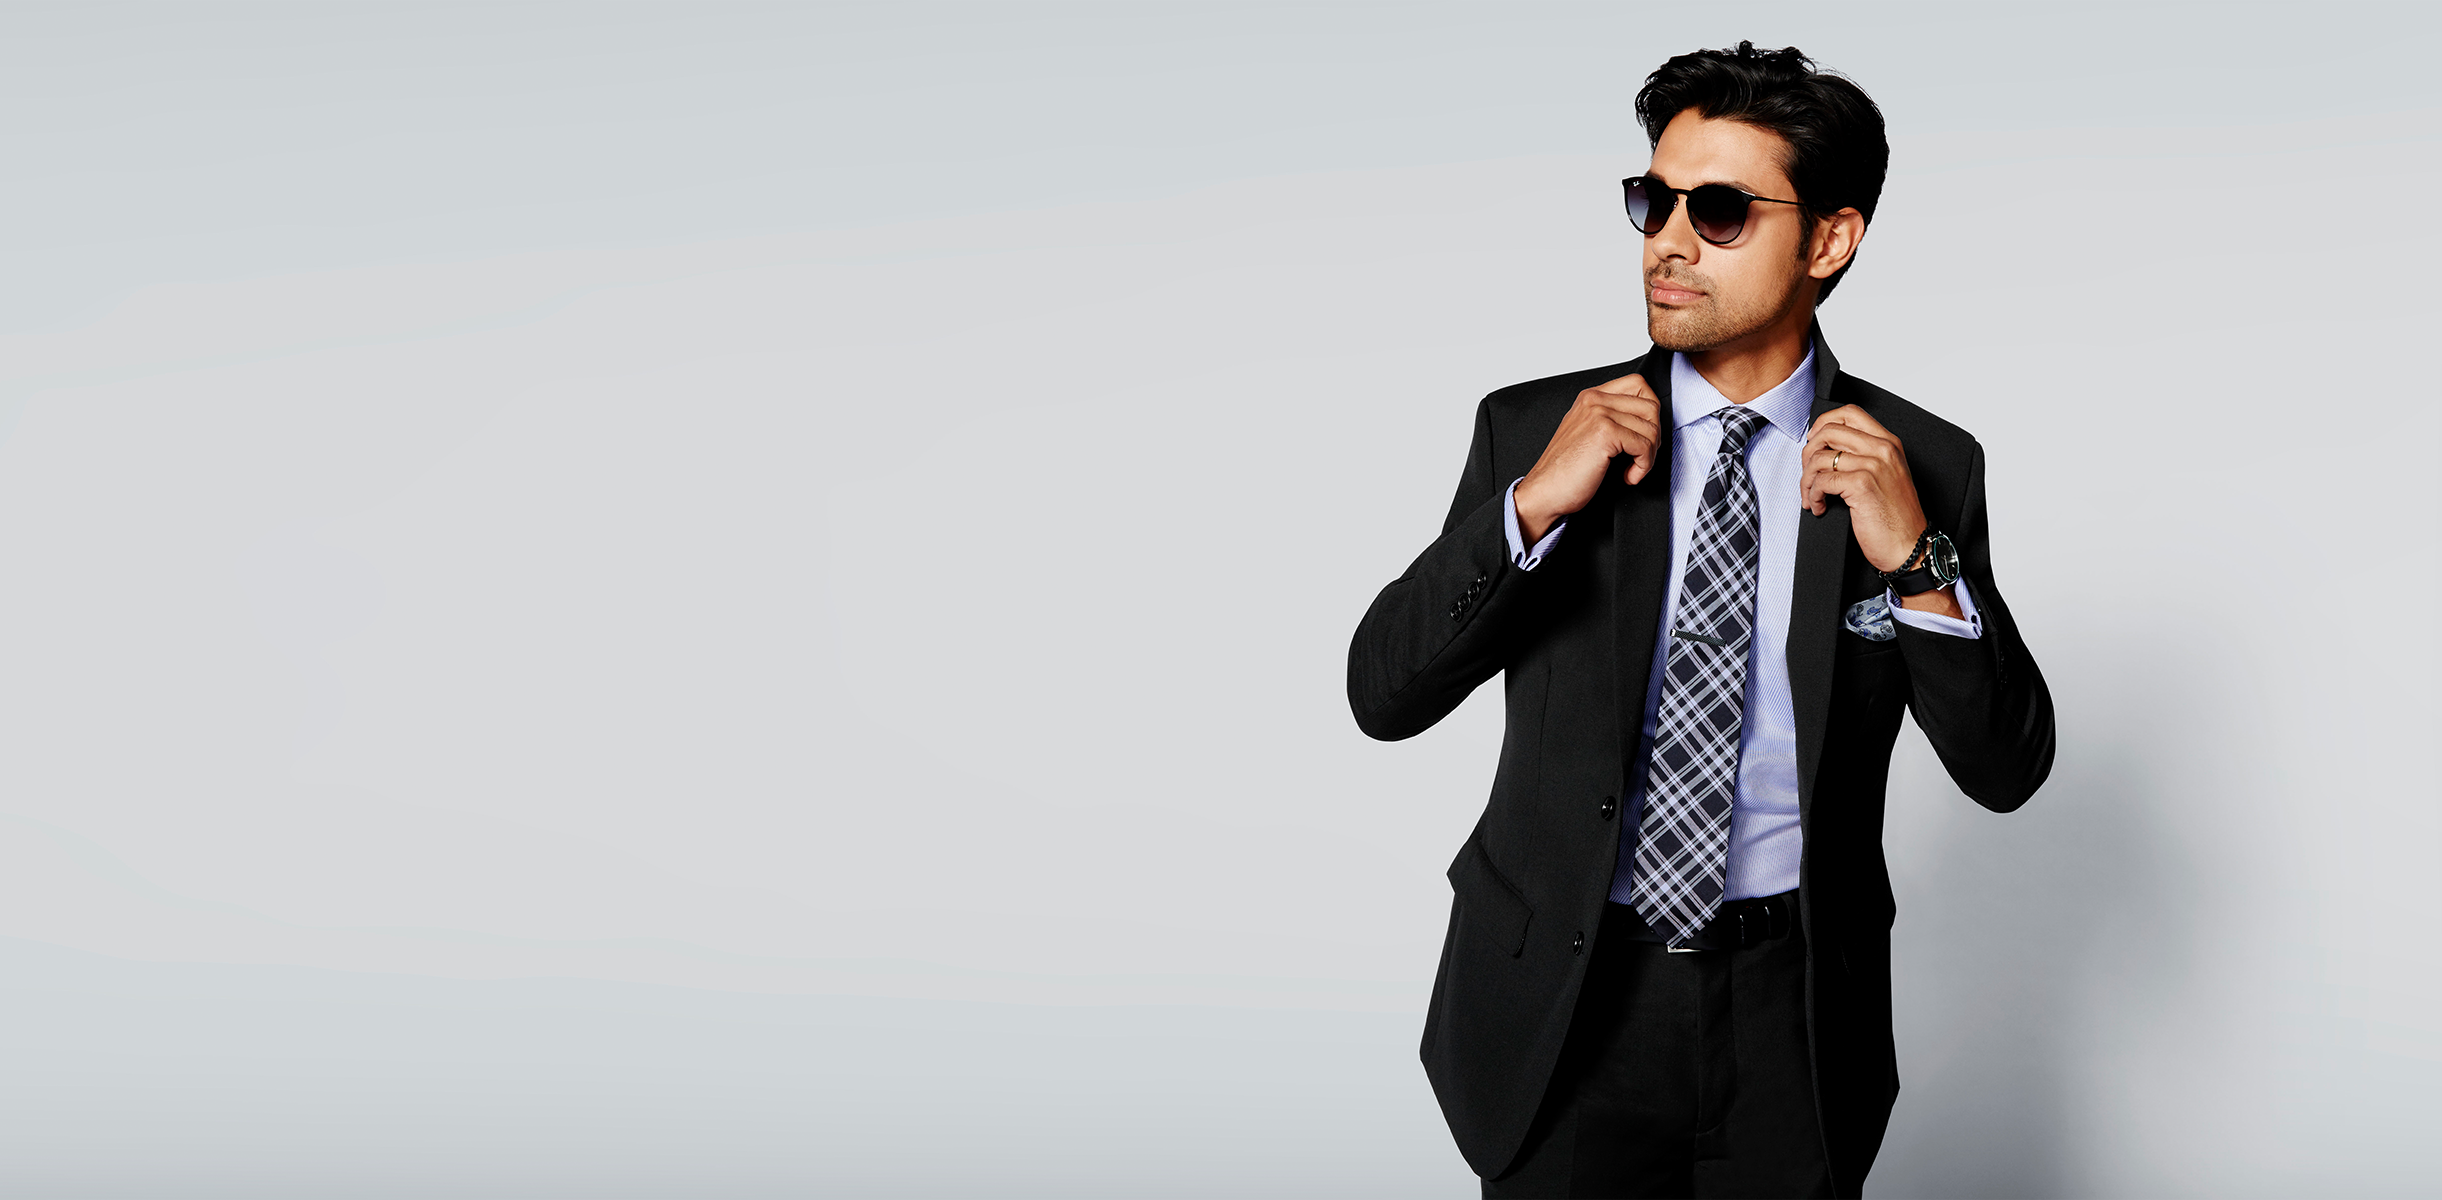 image regarding Just for Men Printable Coupon named Mens Wearhouse